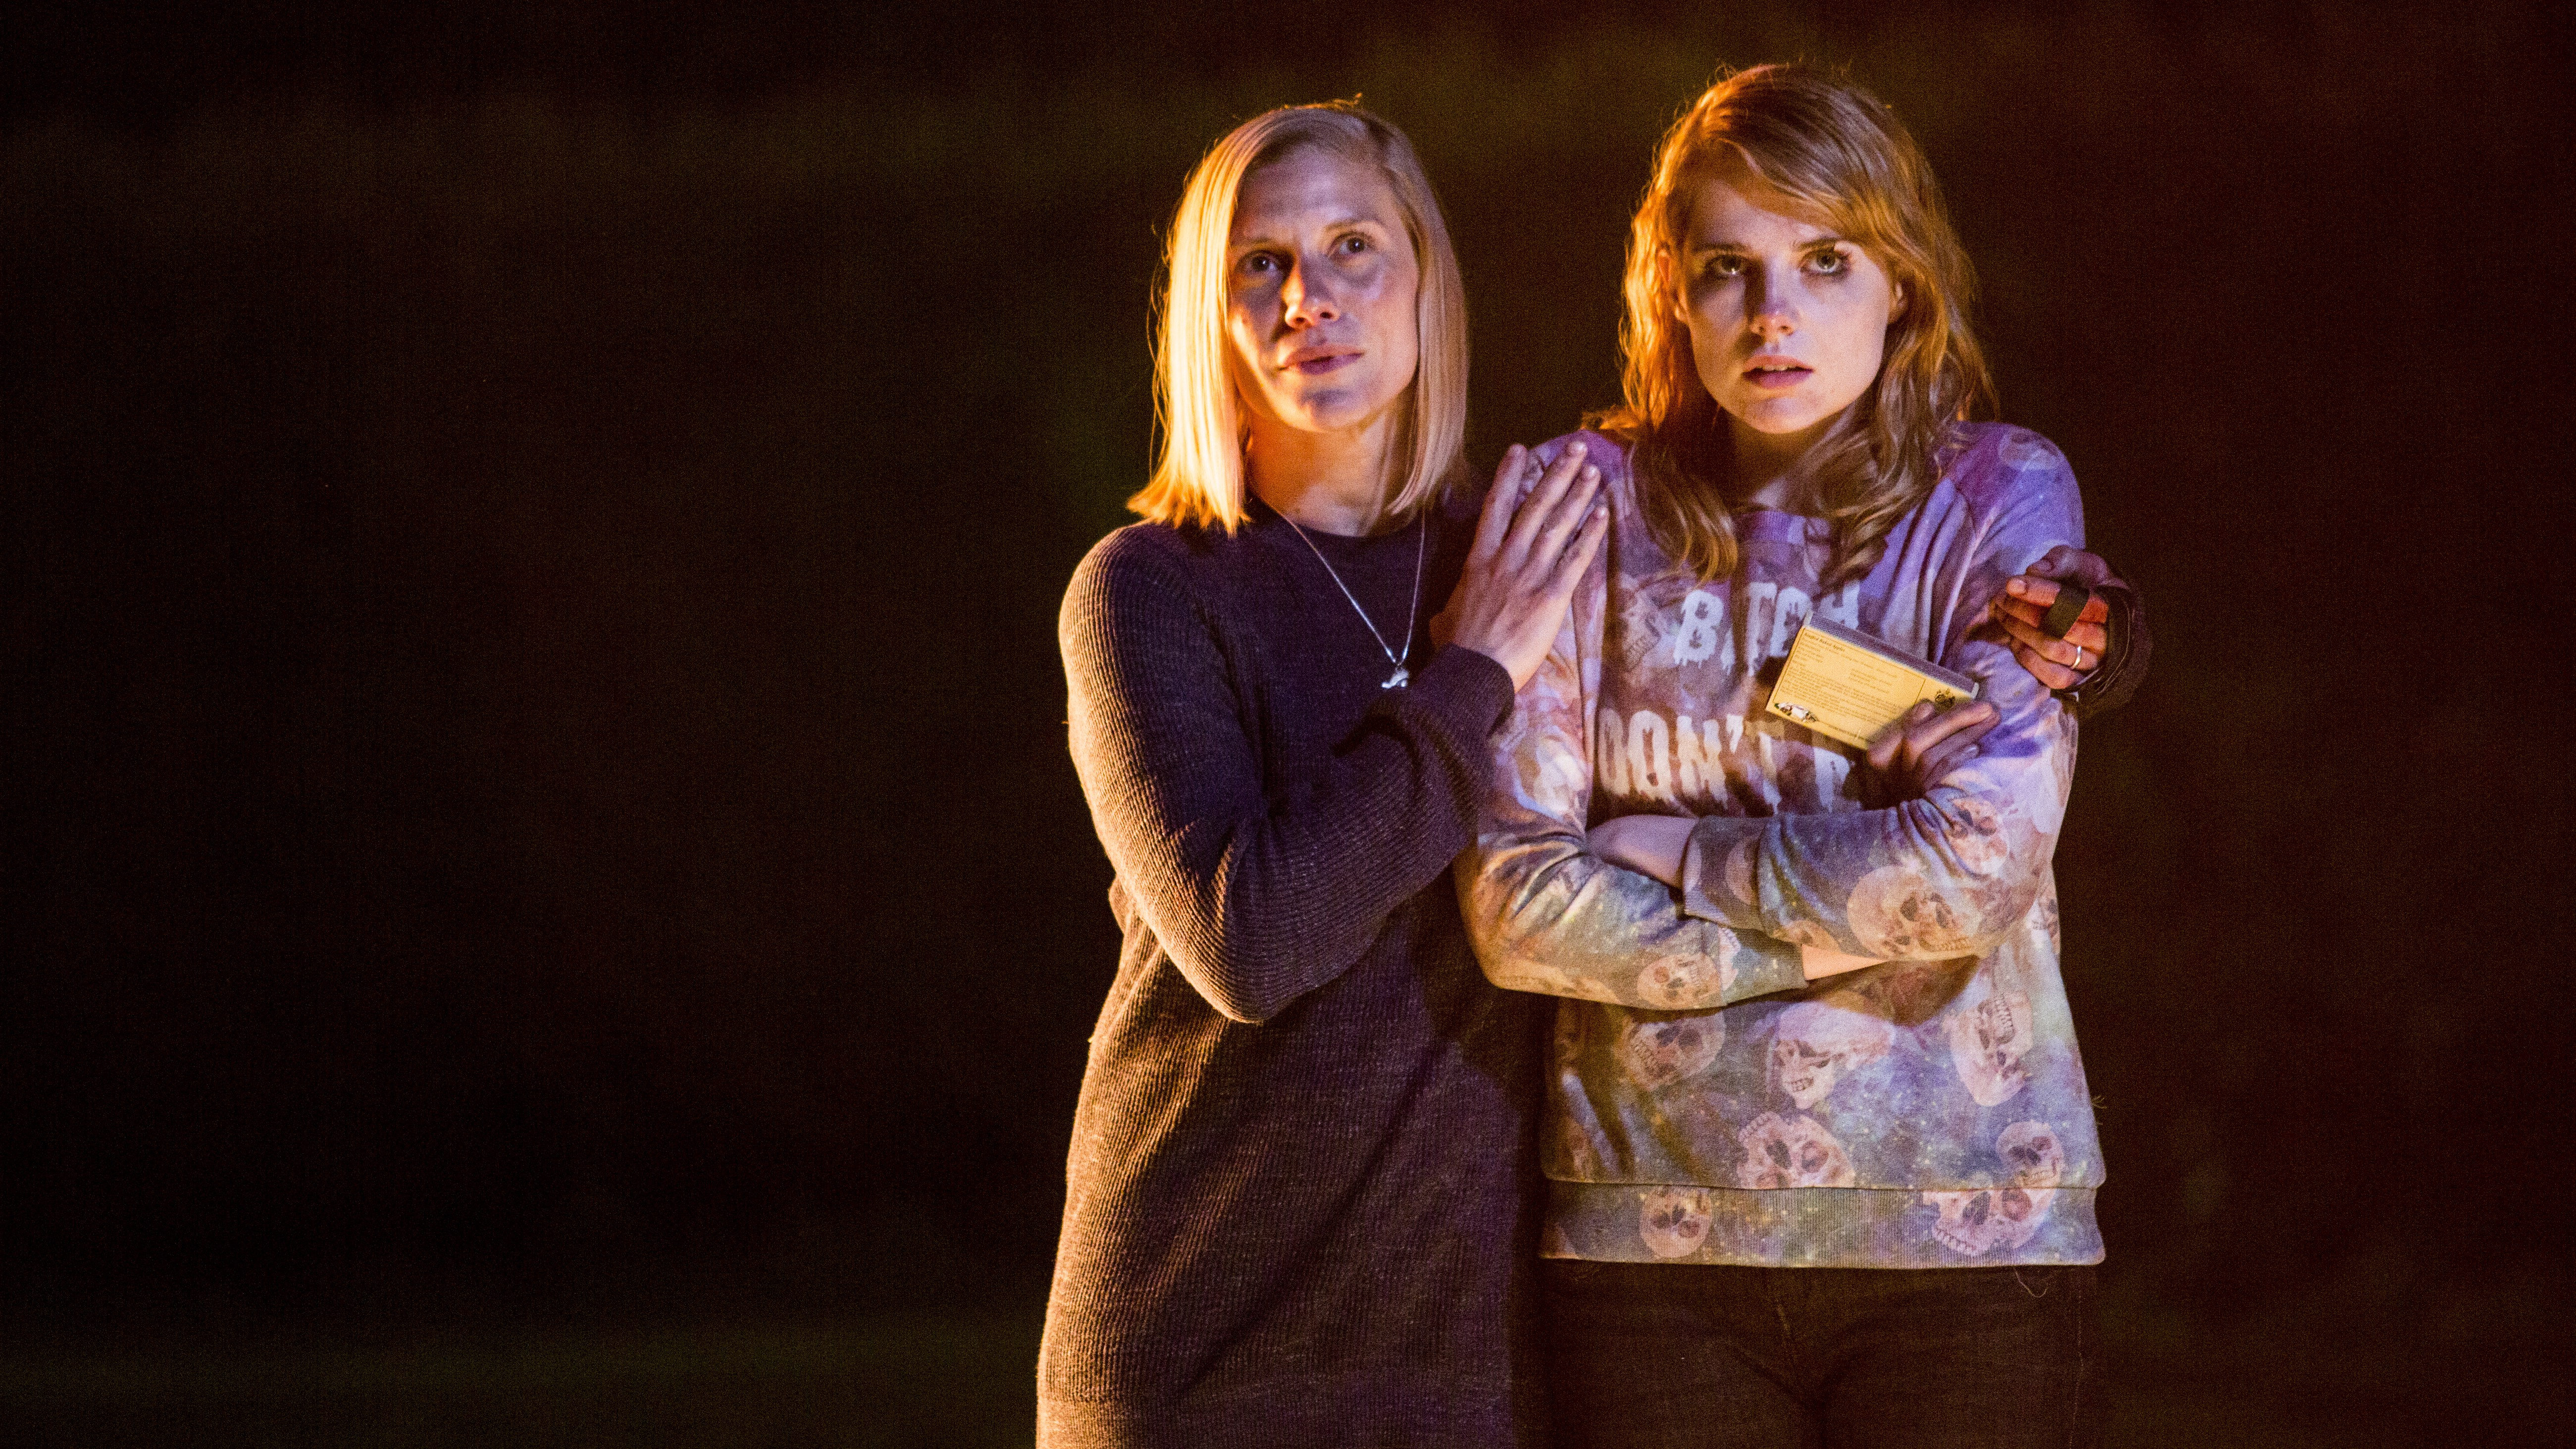 Katee Sackhoff and Lucy Boynton in Don't Knock Twice (2016)